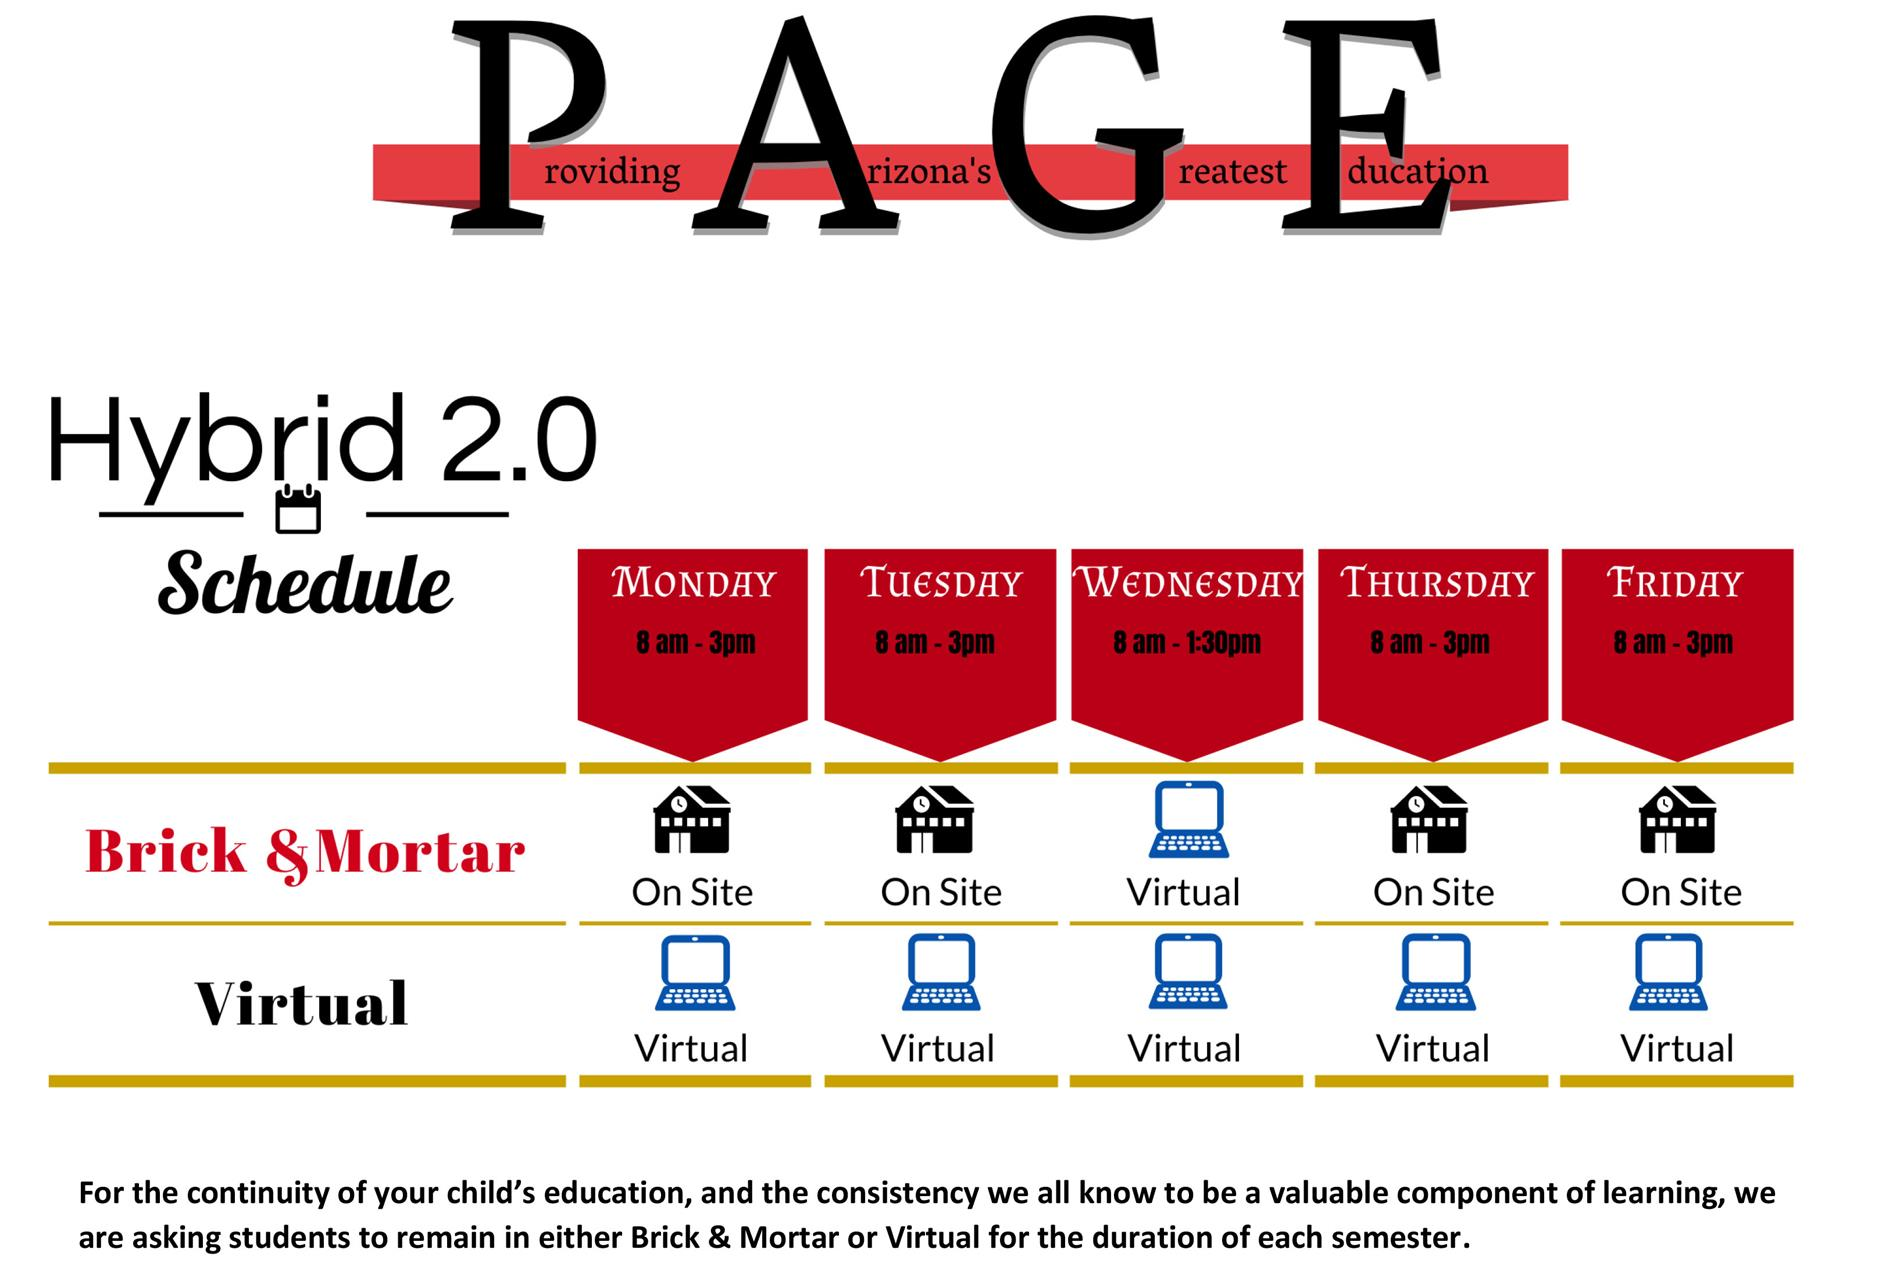 graphic showing PUSD's new hybrid schedule